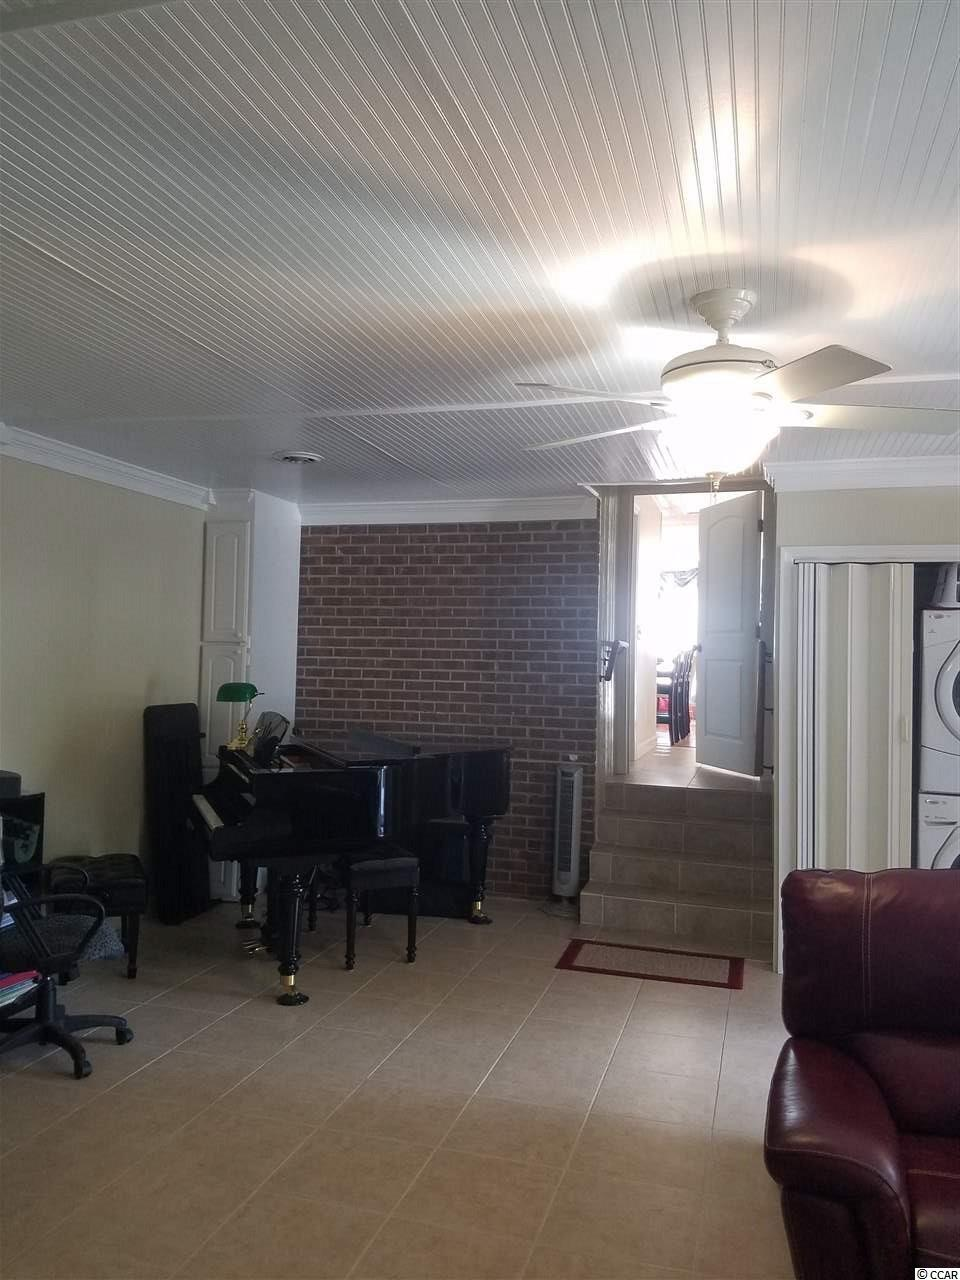 Additional photo for property listing at 620 S 8th Avenue 620 S 8th Avenue Surfside Beach, South Carolina 29575 United States